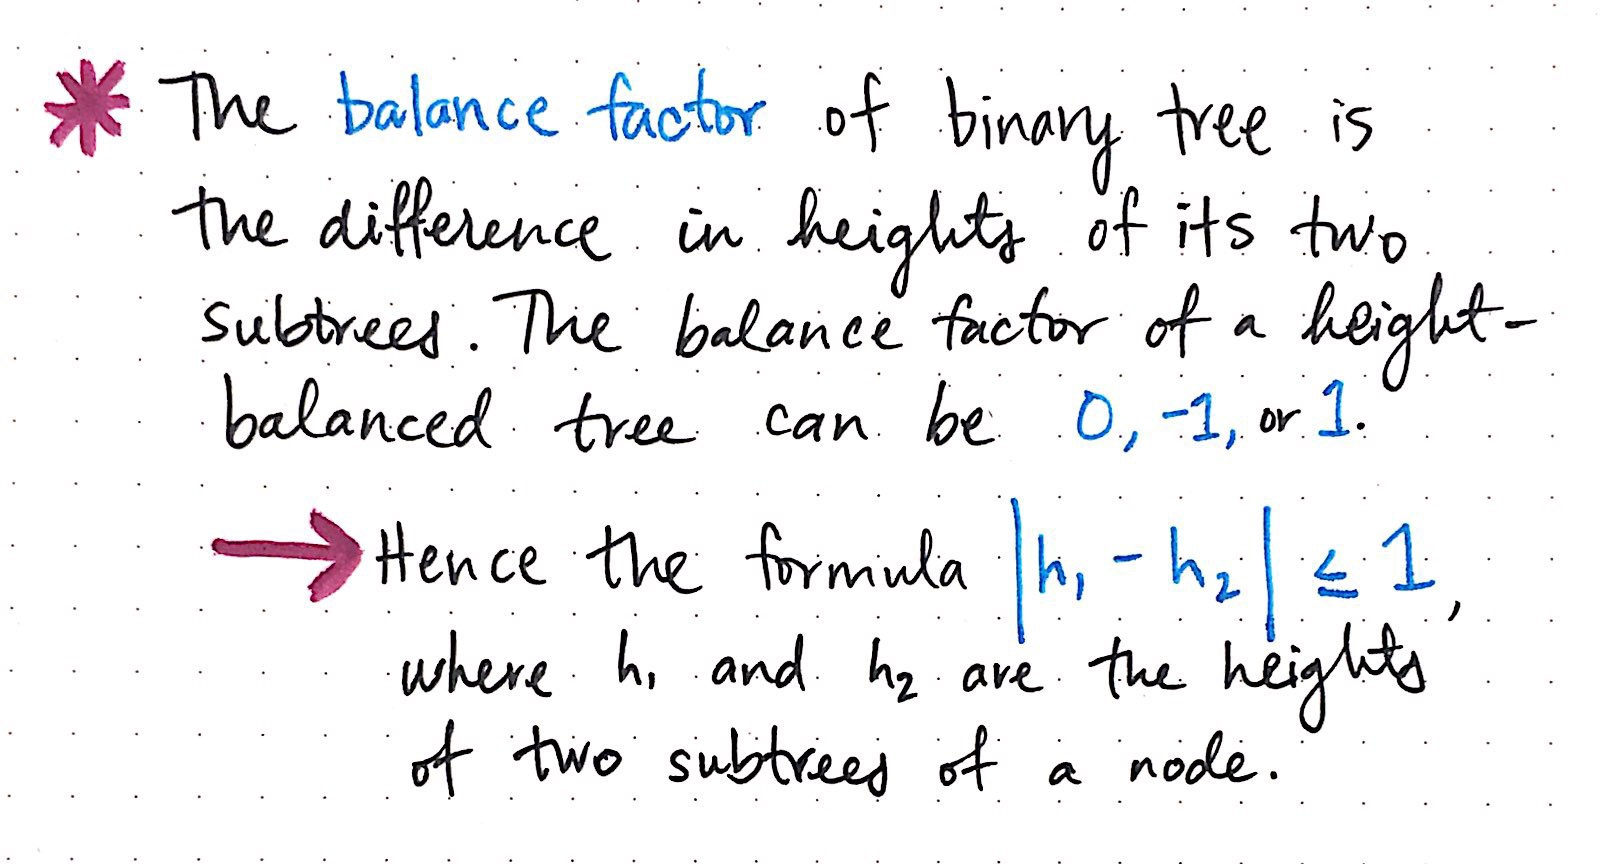 balanced tree in data structure